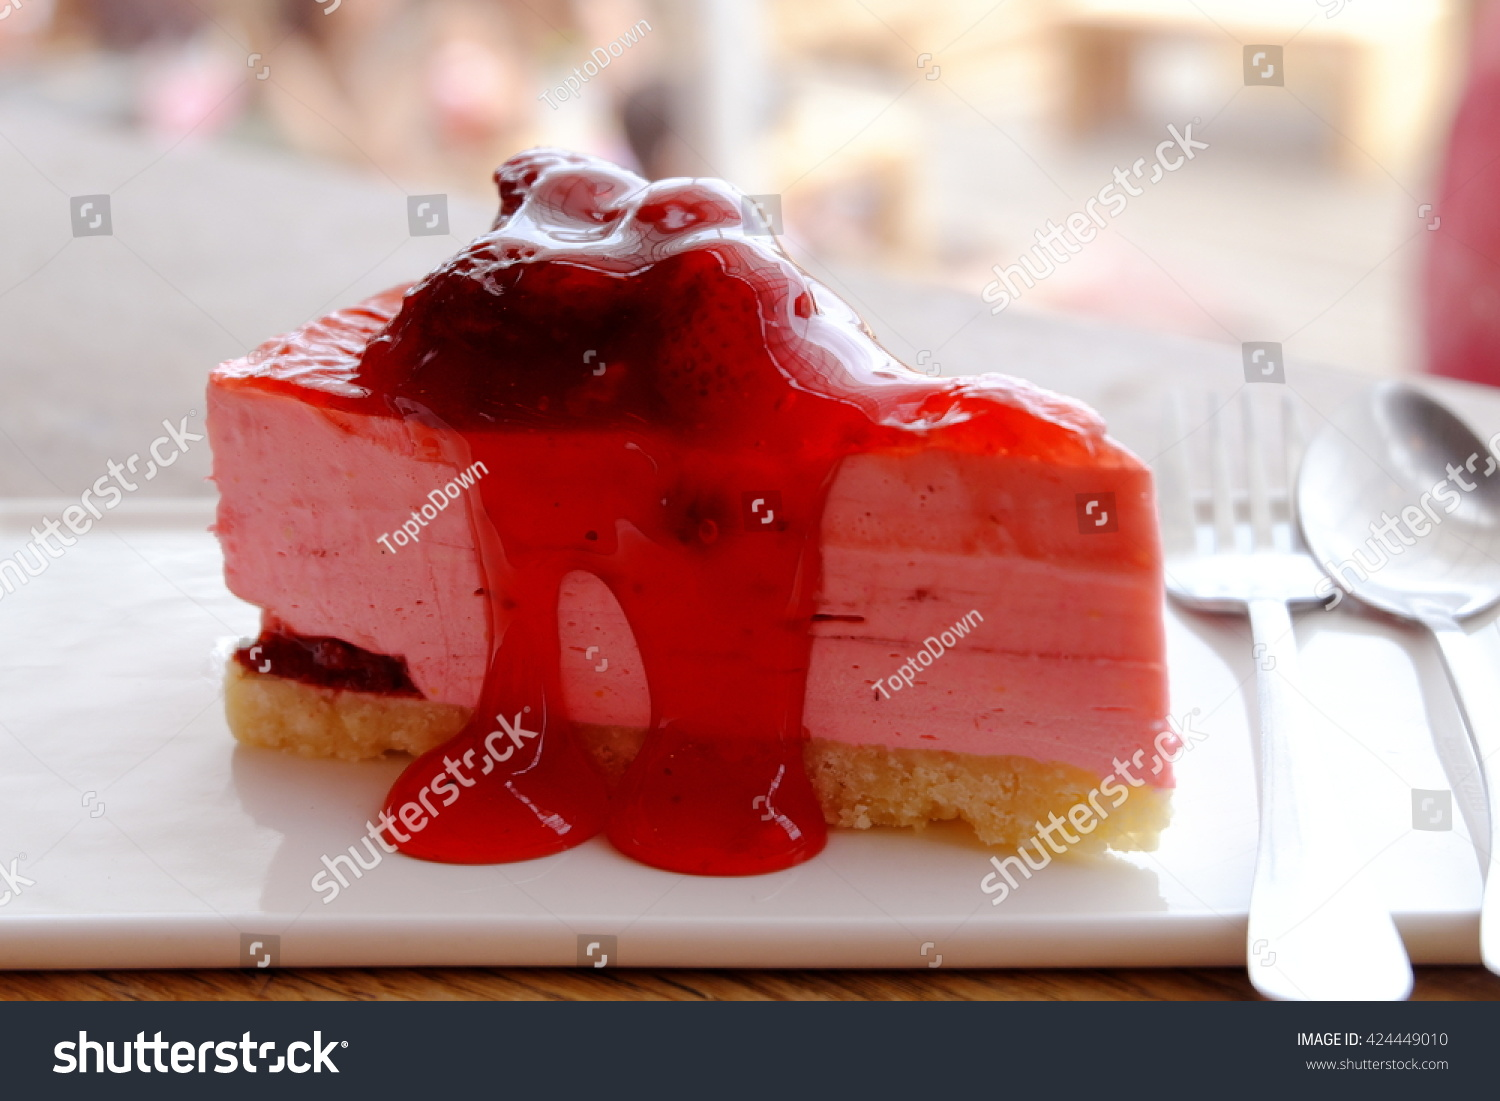 Beautiful Strawberry Cake Images : Beautiful Strawberry Cheese Cake Stock Photo 424449010 ...